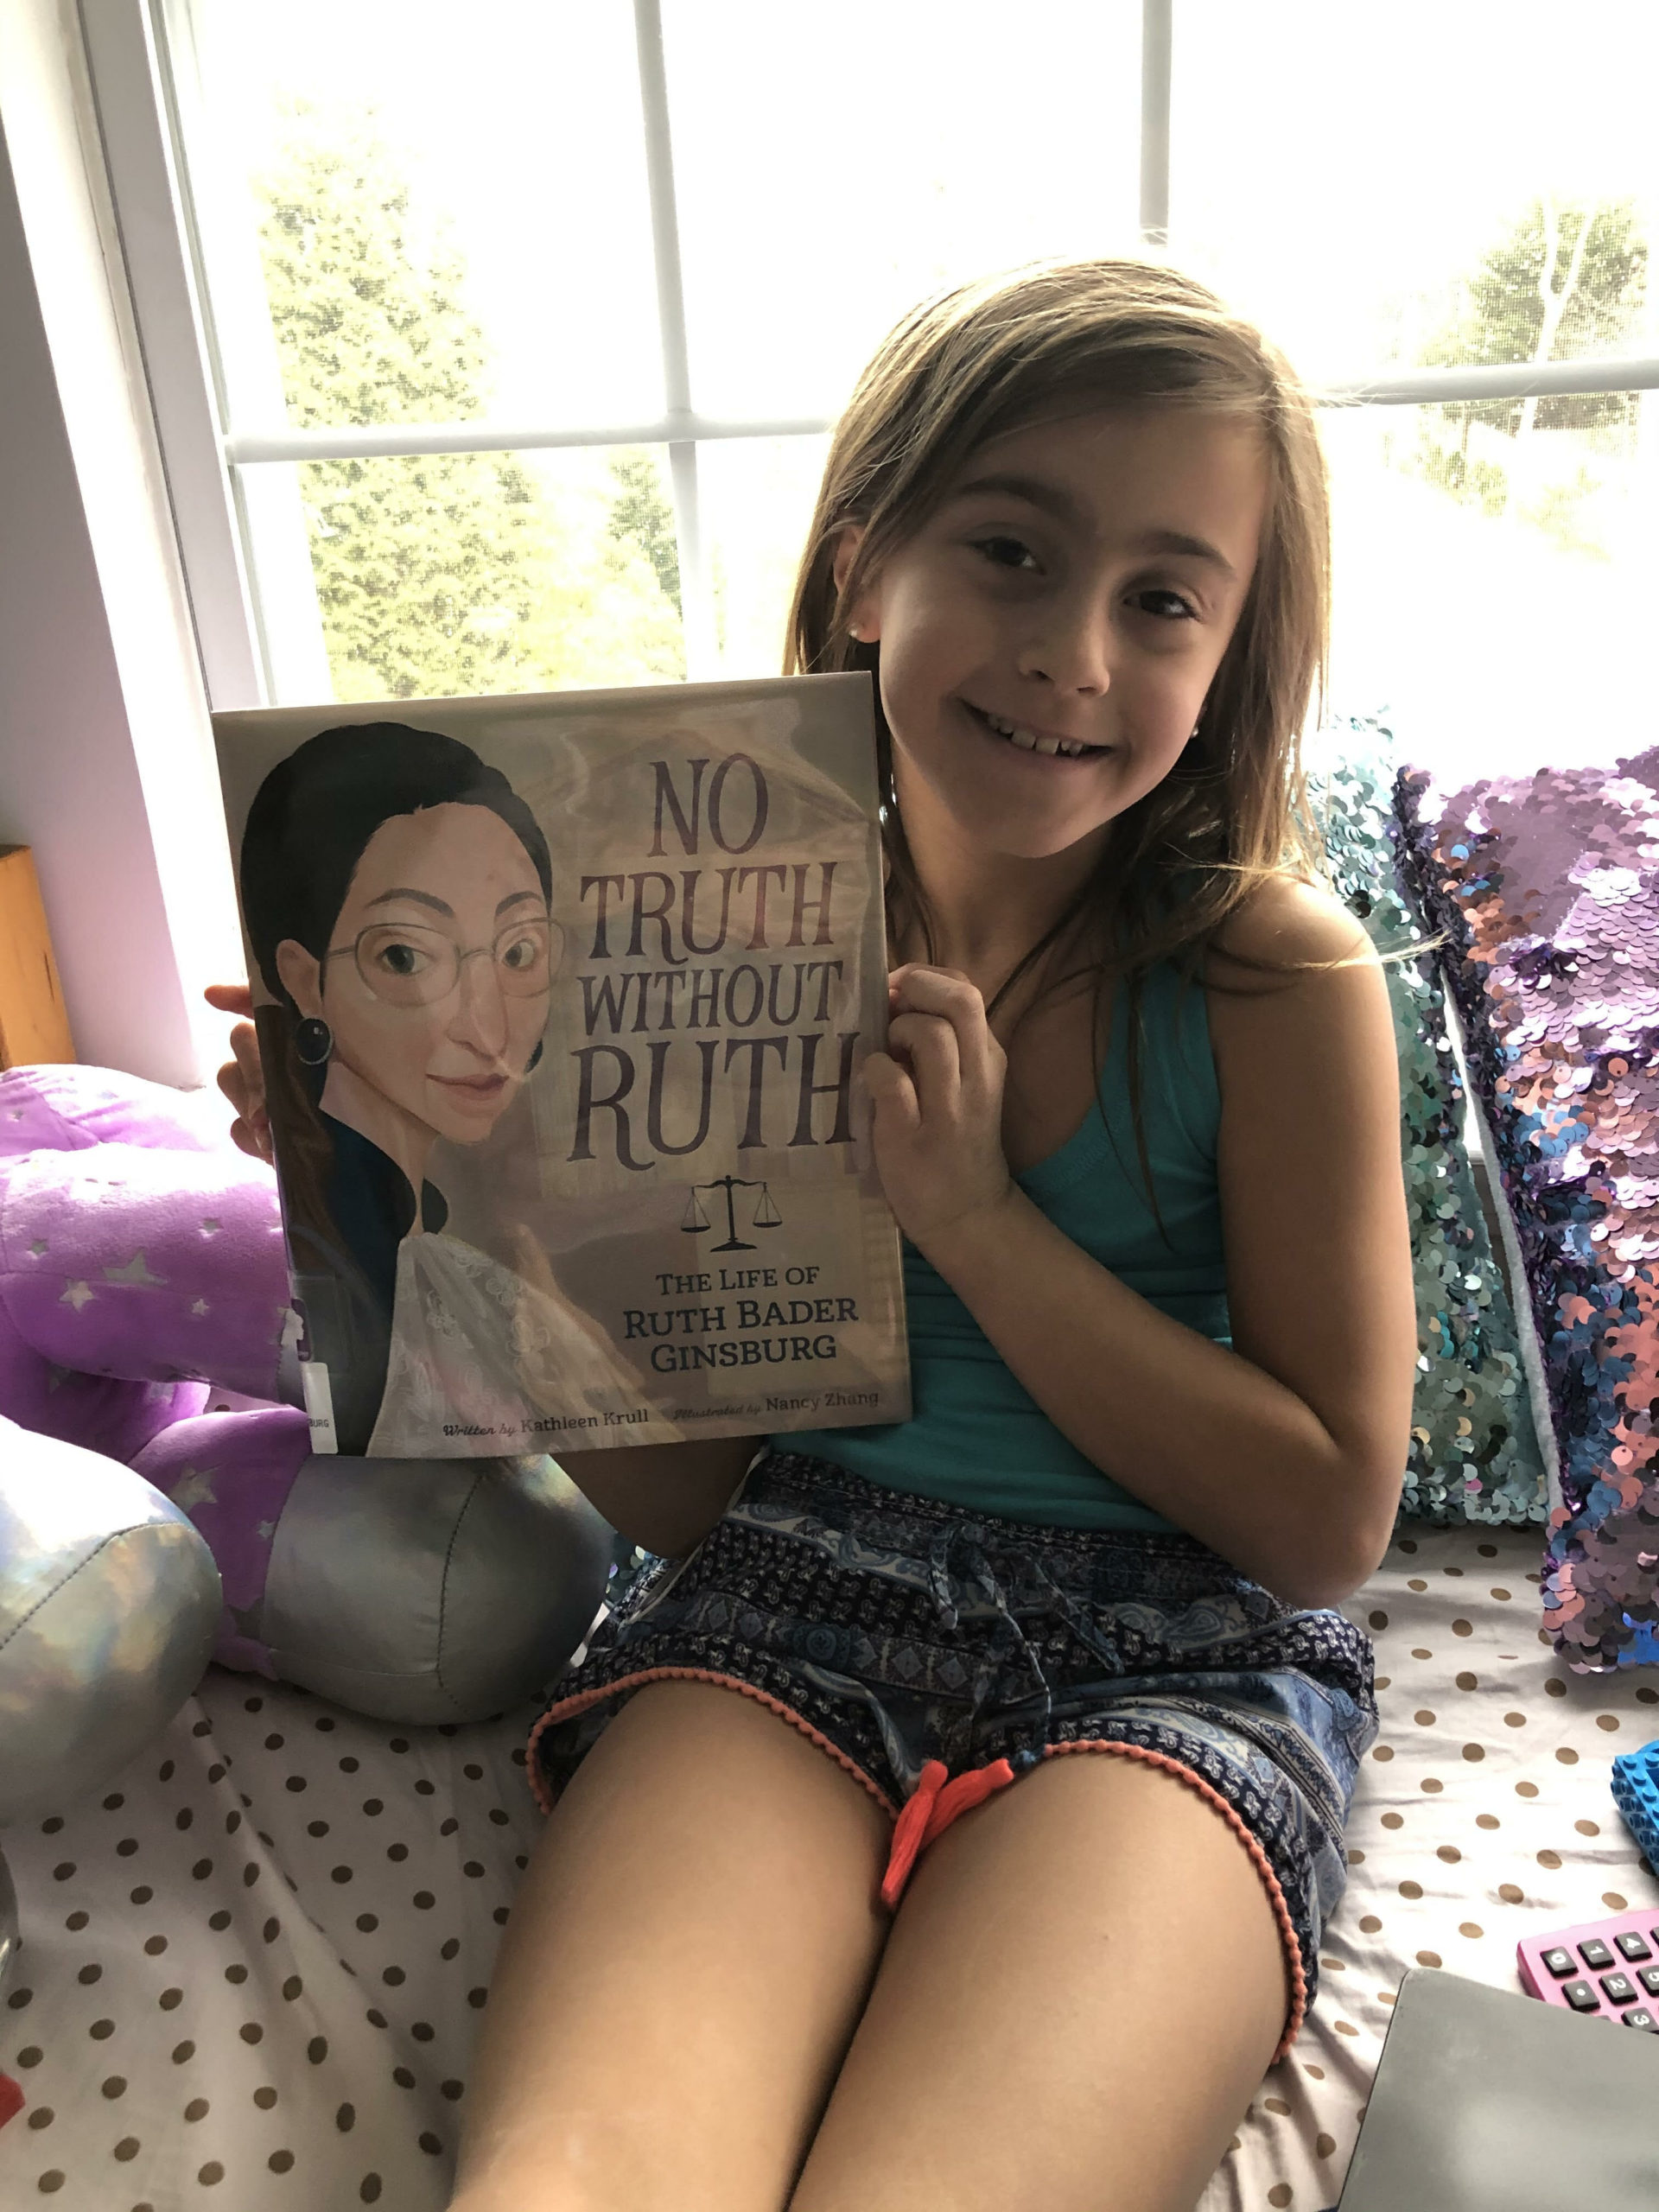 Kendall Riley shares one of her favorite books.